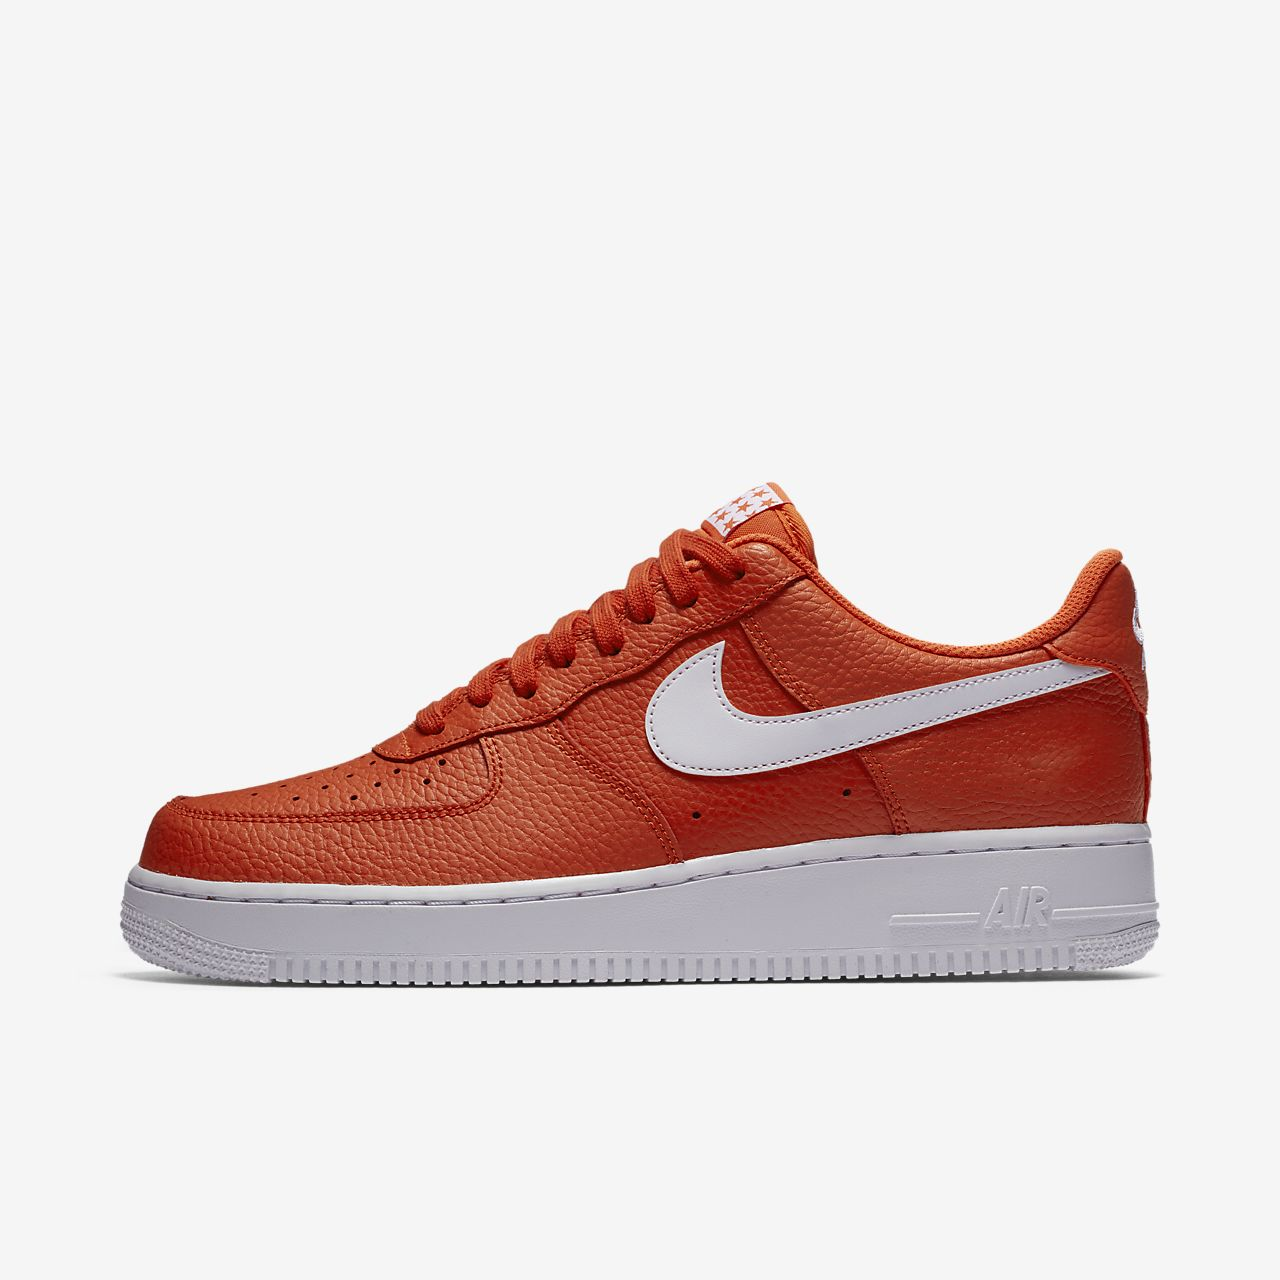 nike air force 1 white red swoosh nz